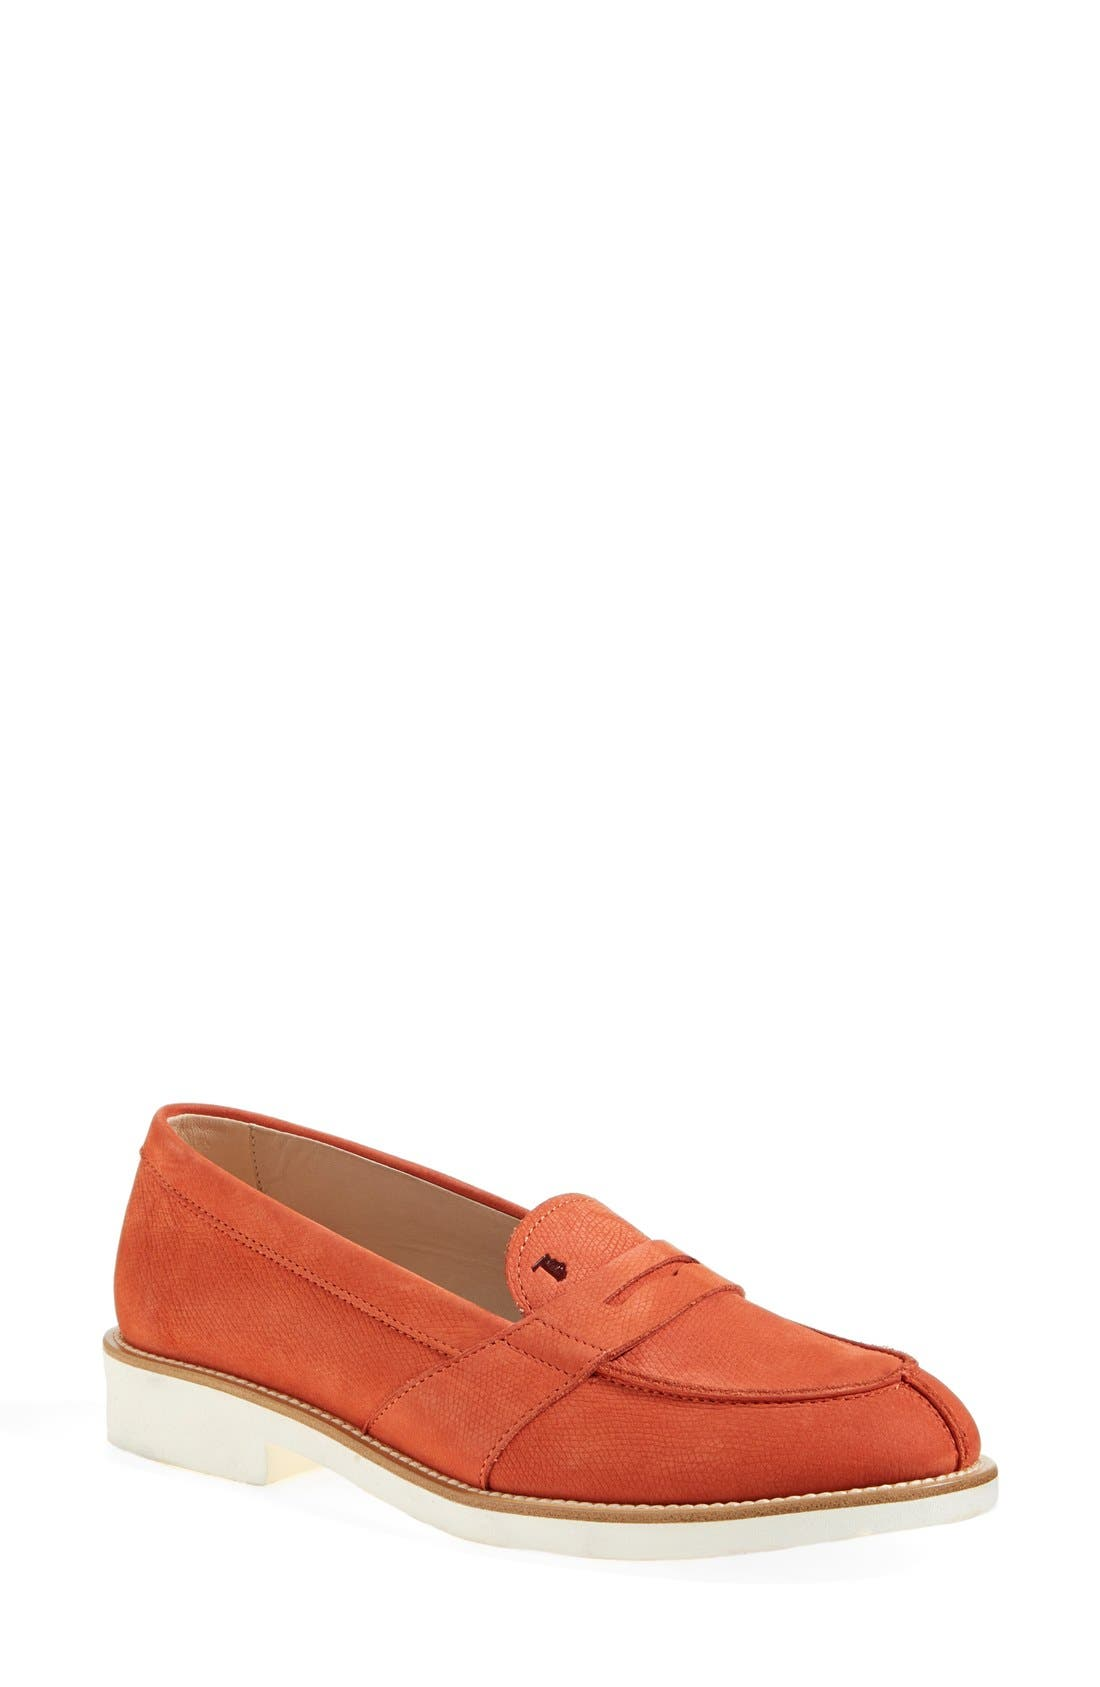 Main Image - Tod's 'Ivy Light' Moccasin Loafer (Women)